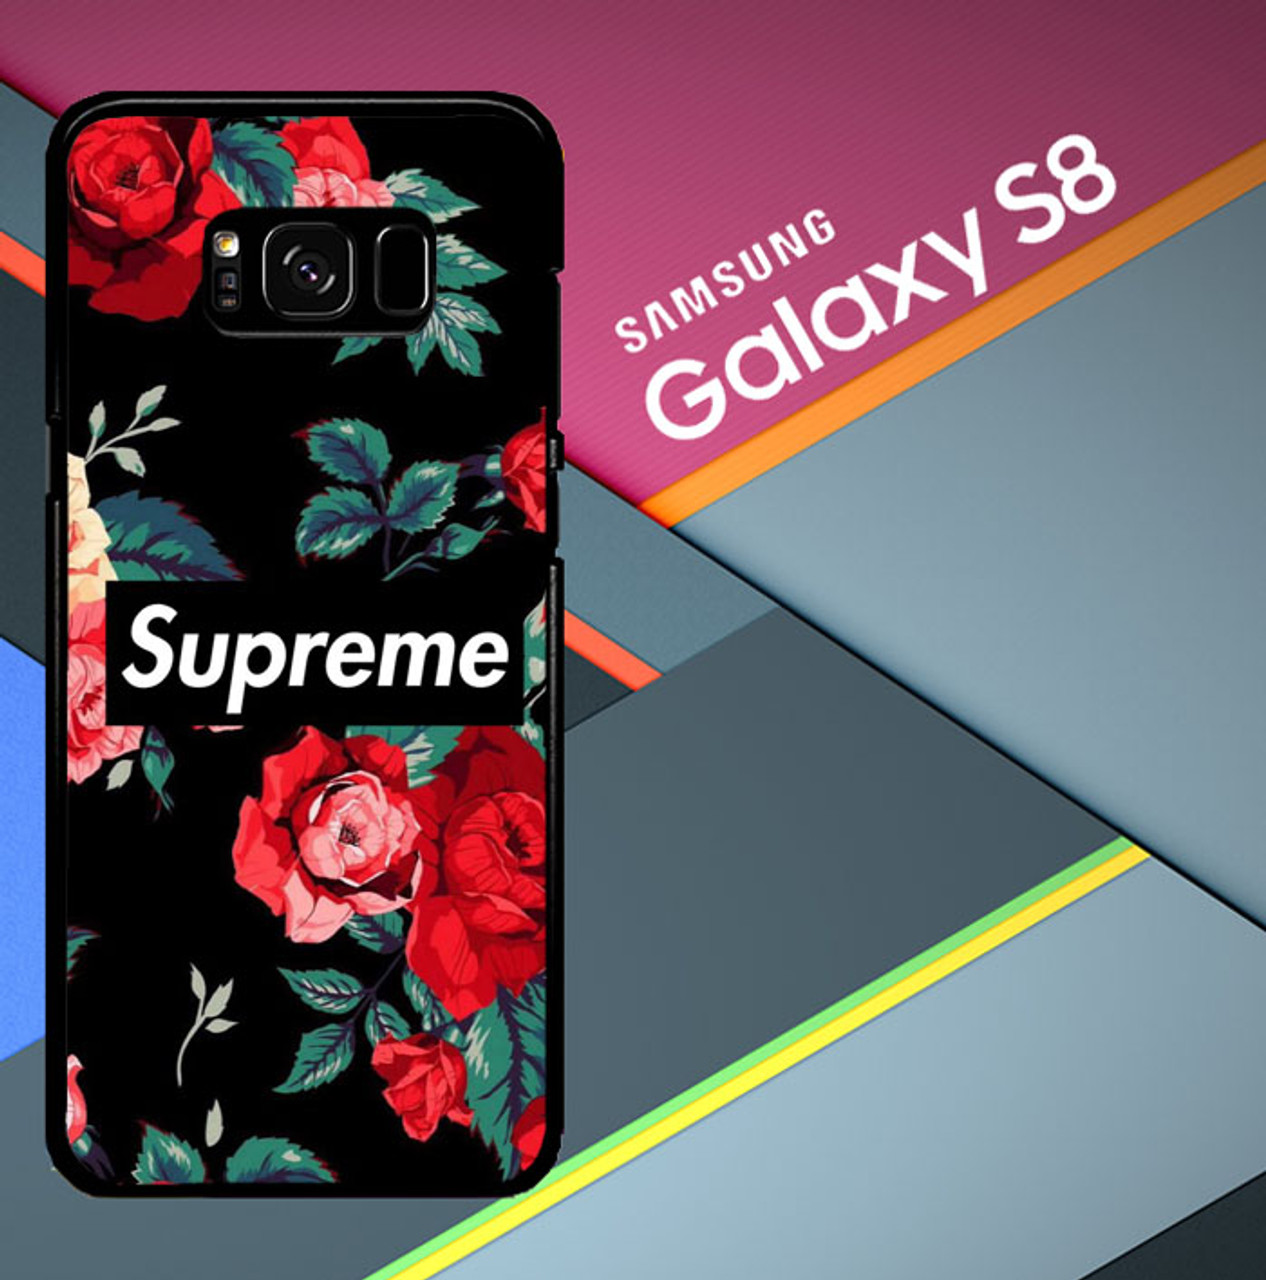 Supreme Wallpaper X8641 Samsung Galaxy S8 Case Flazzy Store